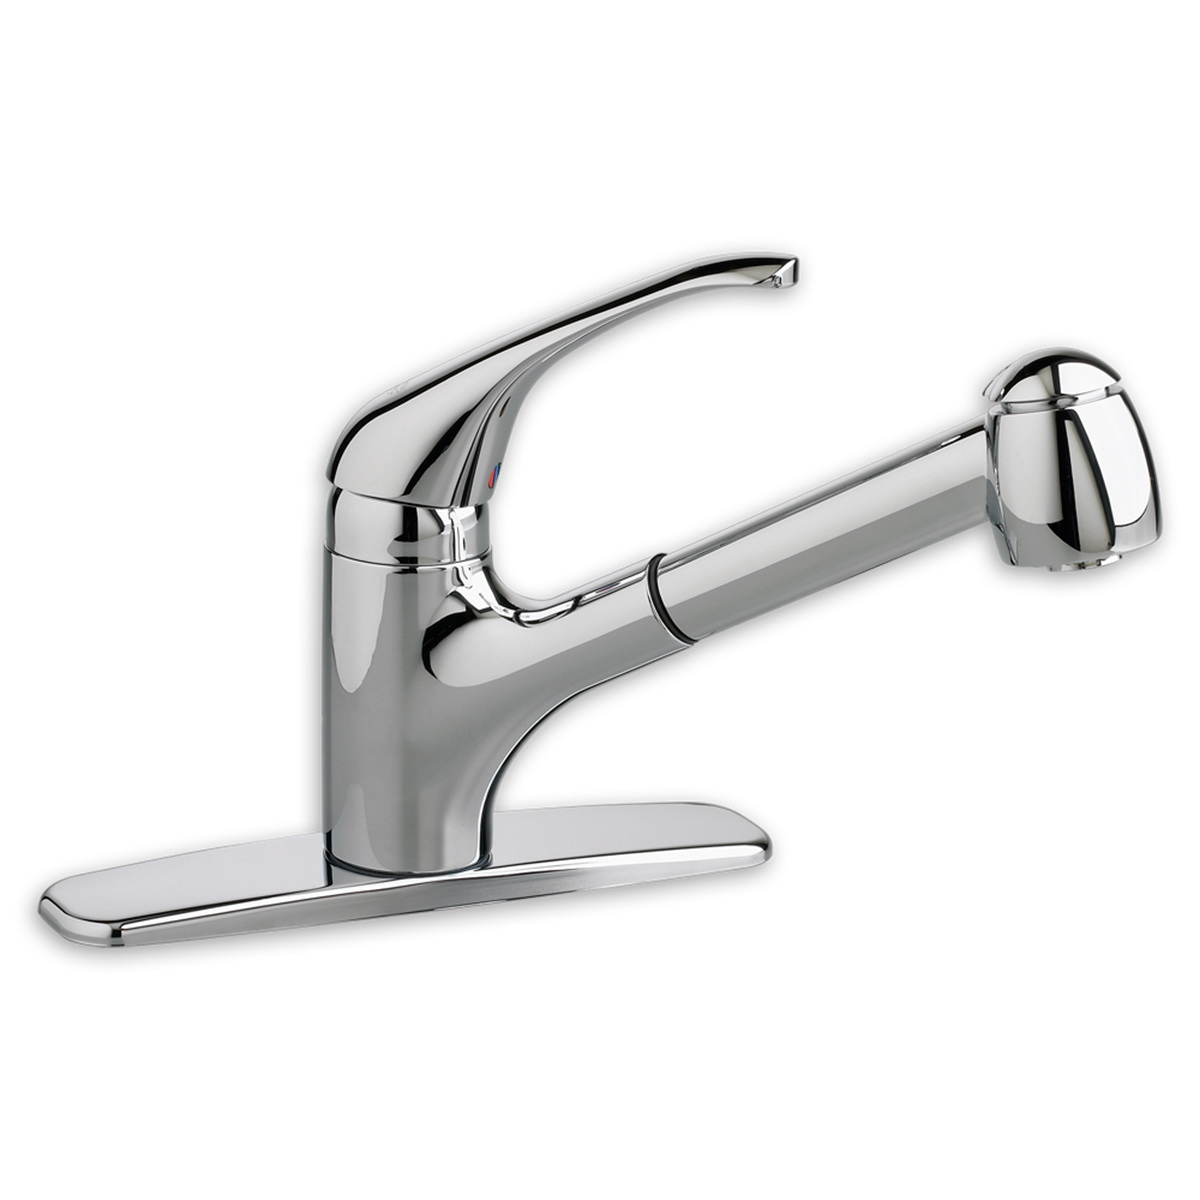 American Standard 4205.104.002 Reliant+® Single Control Kitchen Faucet With Pull-Out Spray, 2.2 gpm, 1 Faucet Hole, Polished Chrome, 1 Handle, Import